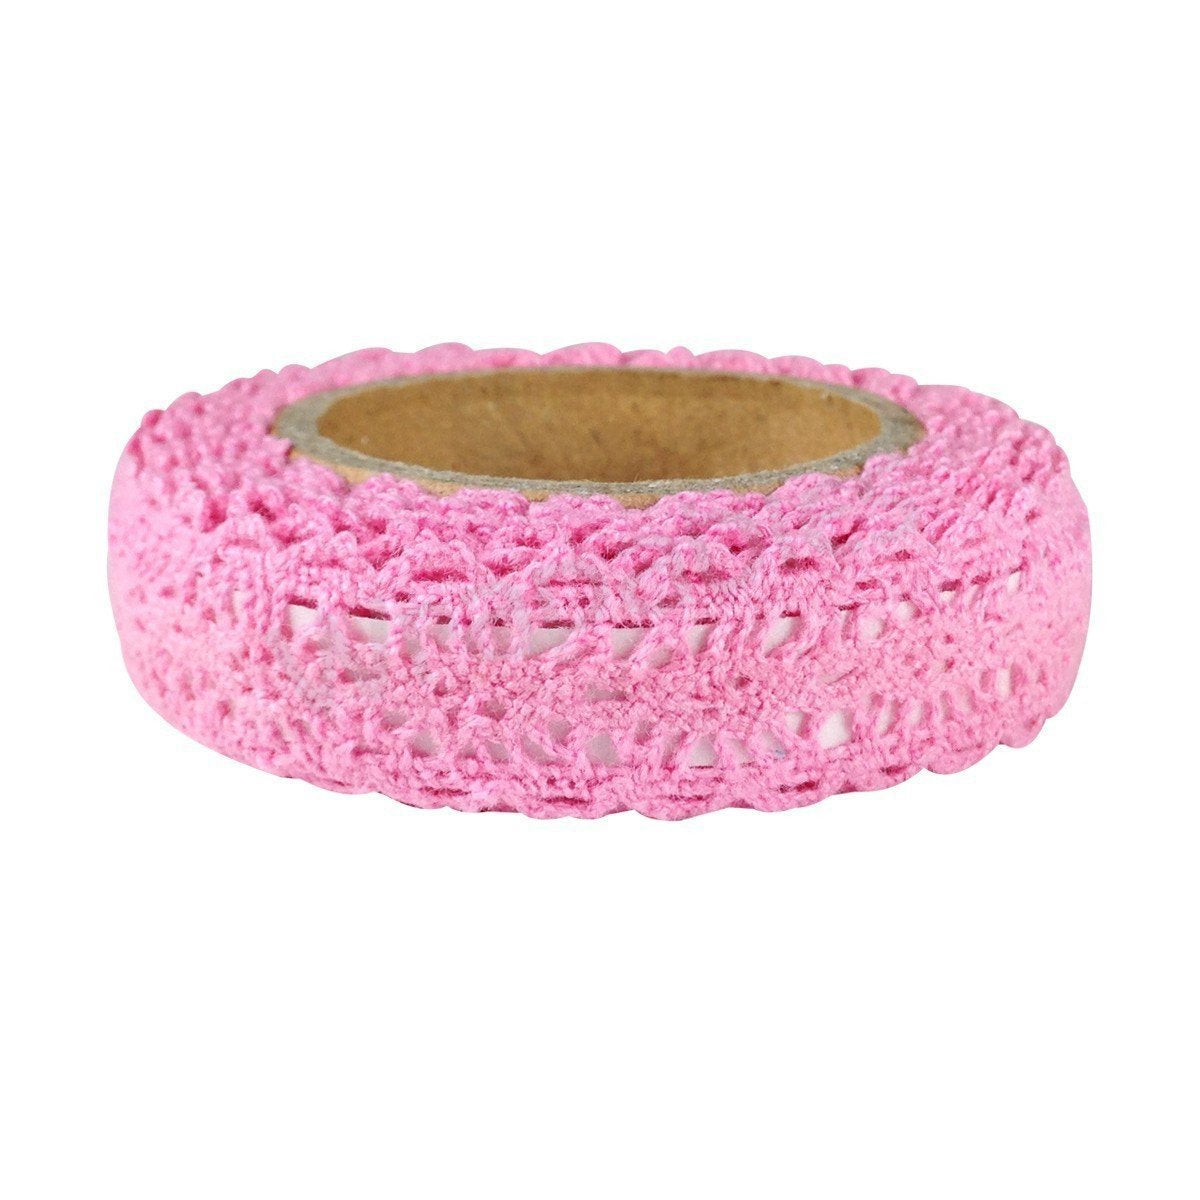 Decorative Lace Tape, 200cm L x 15mm W - Pink